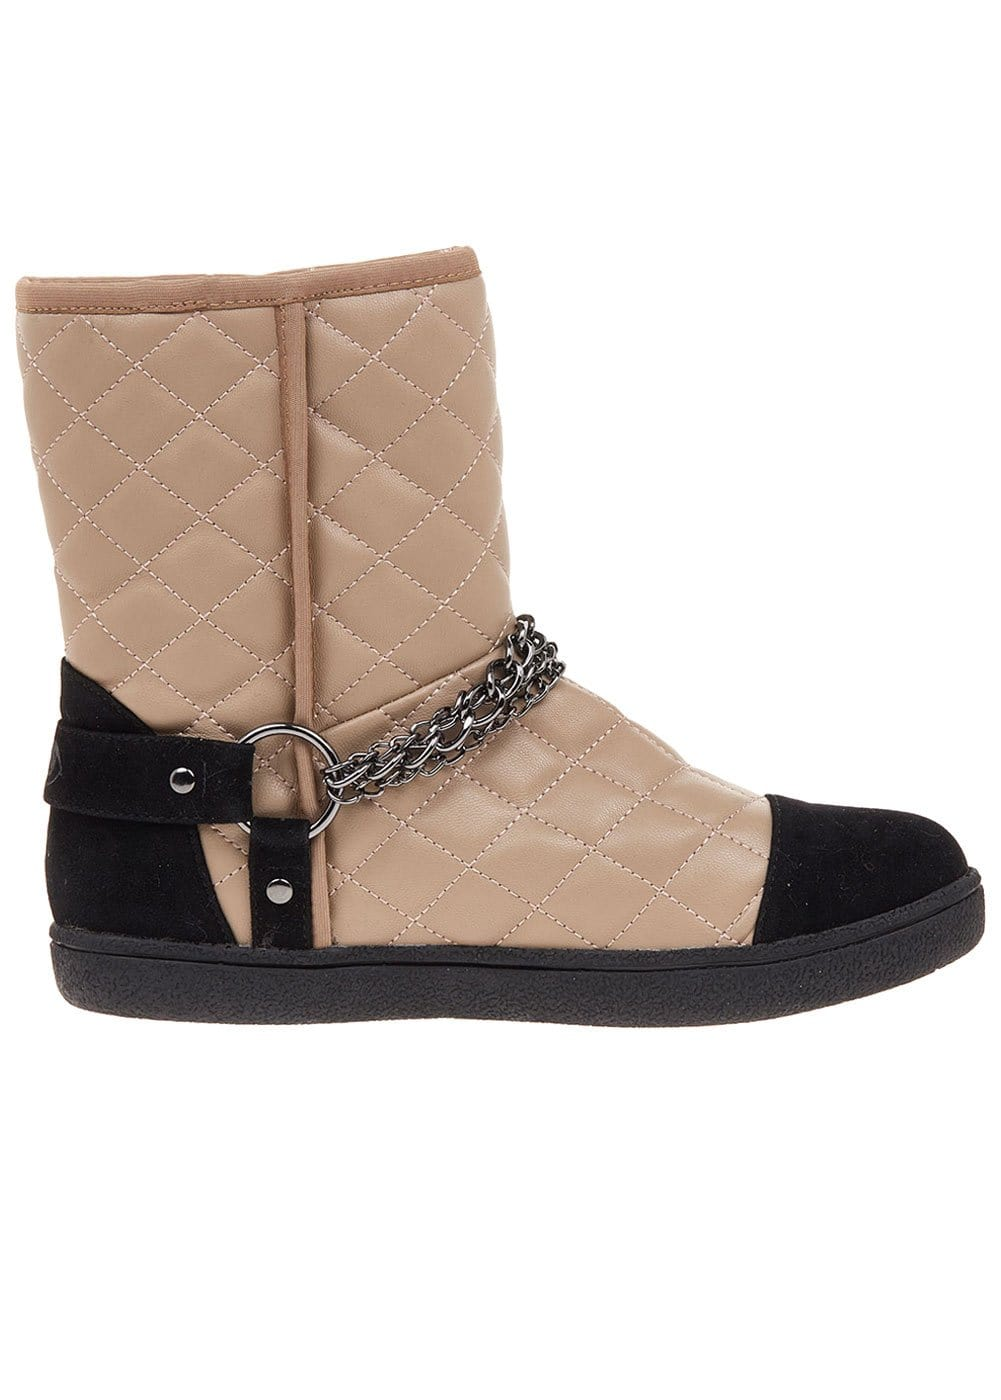 Girls Taupe Winter Biker Boots With Faux Fur Lining-TeenzShop